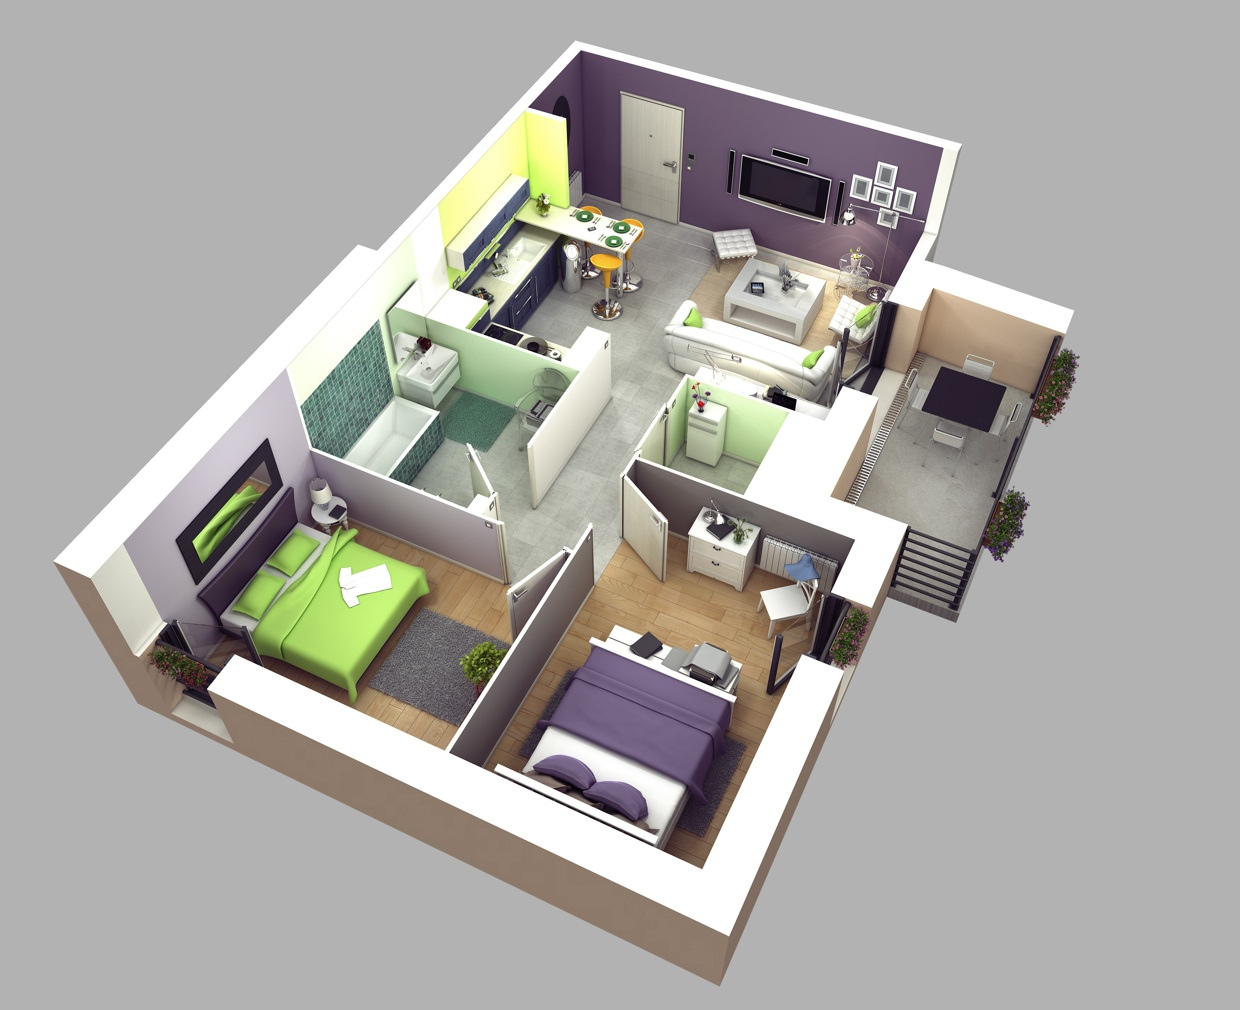 Building Design Two Room